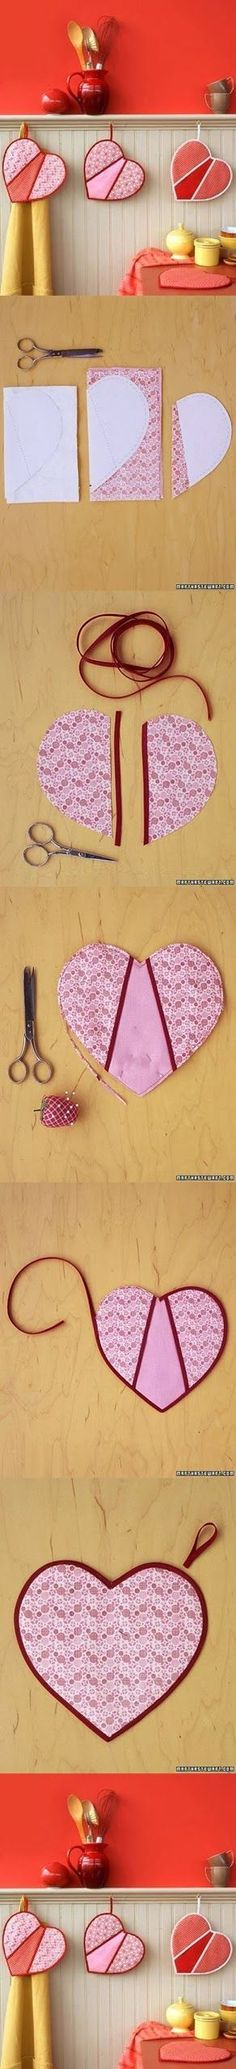 DIY Heart Shaped Pot Holders, making for my teapot and the kiddies tea parties Fabric Crafts, Sewing Crafts, Sewing Projects, Diy Projects, Craft Tutorials, Sewing Tutorials, Sewing Patterns, Lovely Tutorials, Free Tutorials